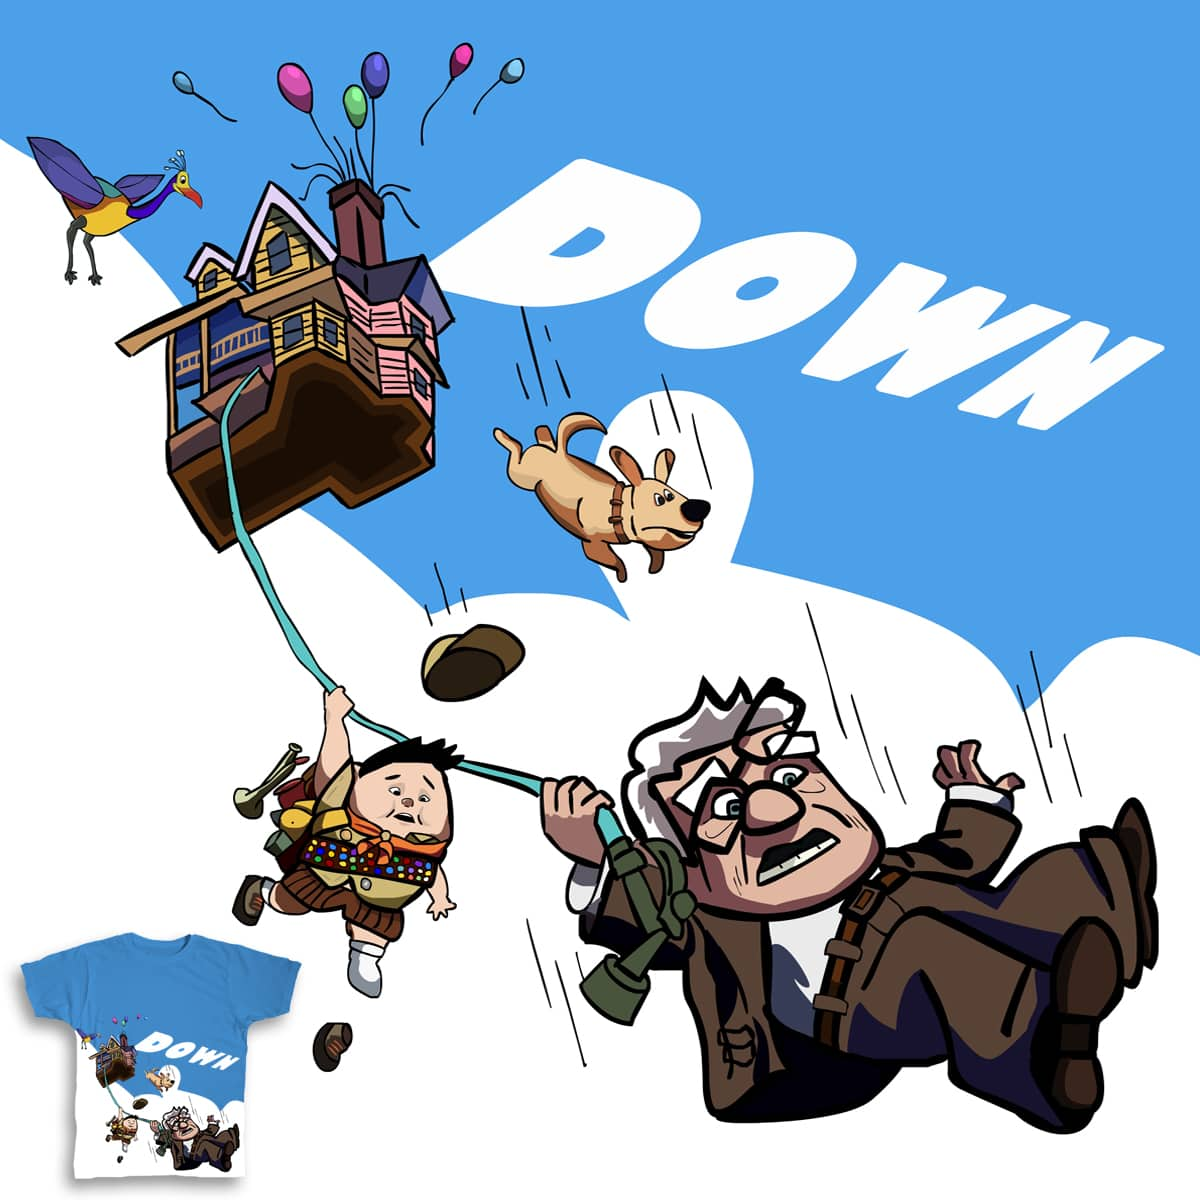 DOWN by BeaverPancakes on Threadless